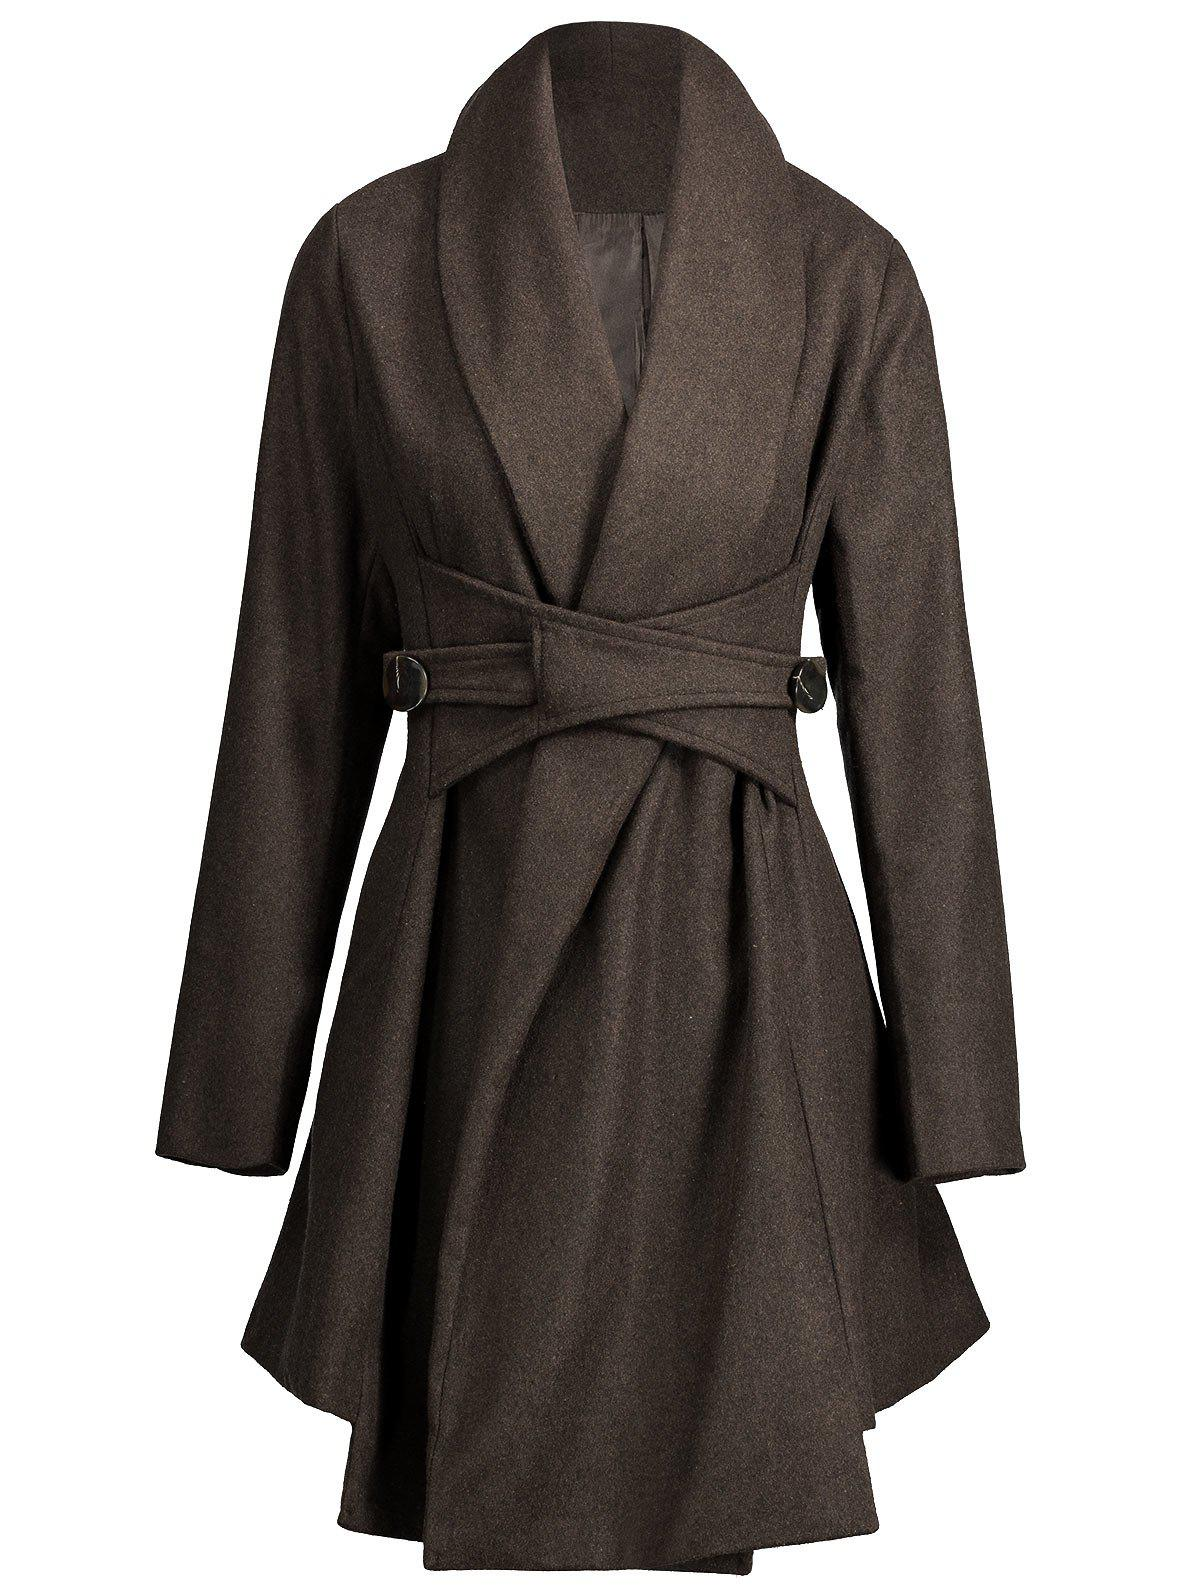 Turn Down Collar Asymmetrical Felt CoatWOMEN<br><br>Size: M; Color: DARK COFFEE; Clothes Type: Wool &amp; Blends; Material: Acrylic,Polyester; Type: High Waist; Shirt Length: Regular; Sleeve Length: Full; Collar: Turn-down Collar; Pattern Type: Solid; Embellishment: Button; Style: Fashion; Season: Fall,Spring,Winter; With Belt: No; Weight: 1.2000kg; Package Contents: 1 x Coat;